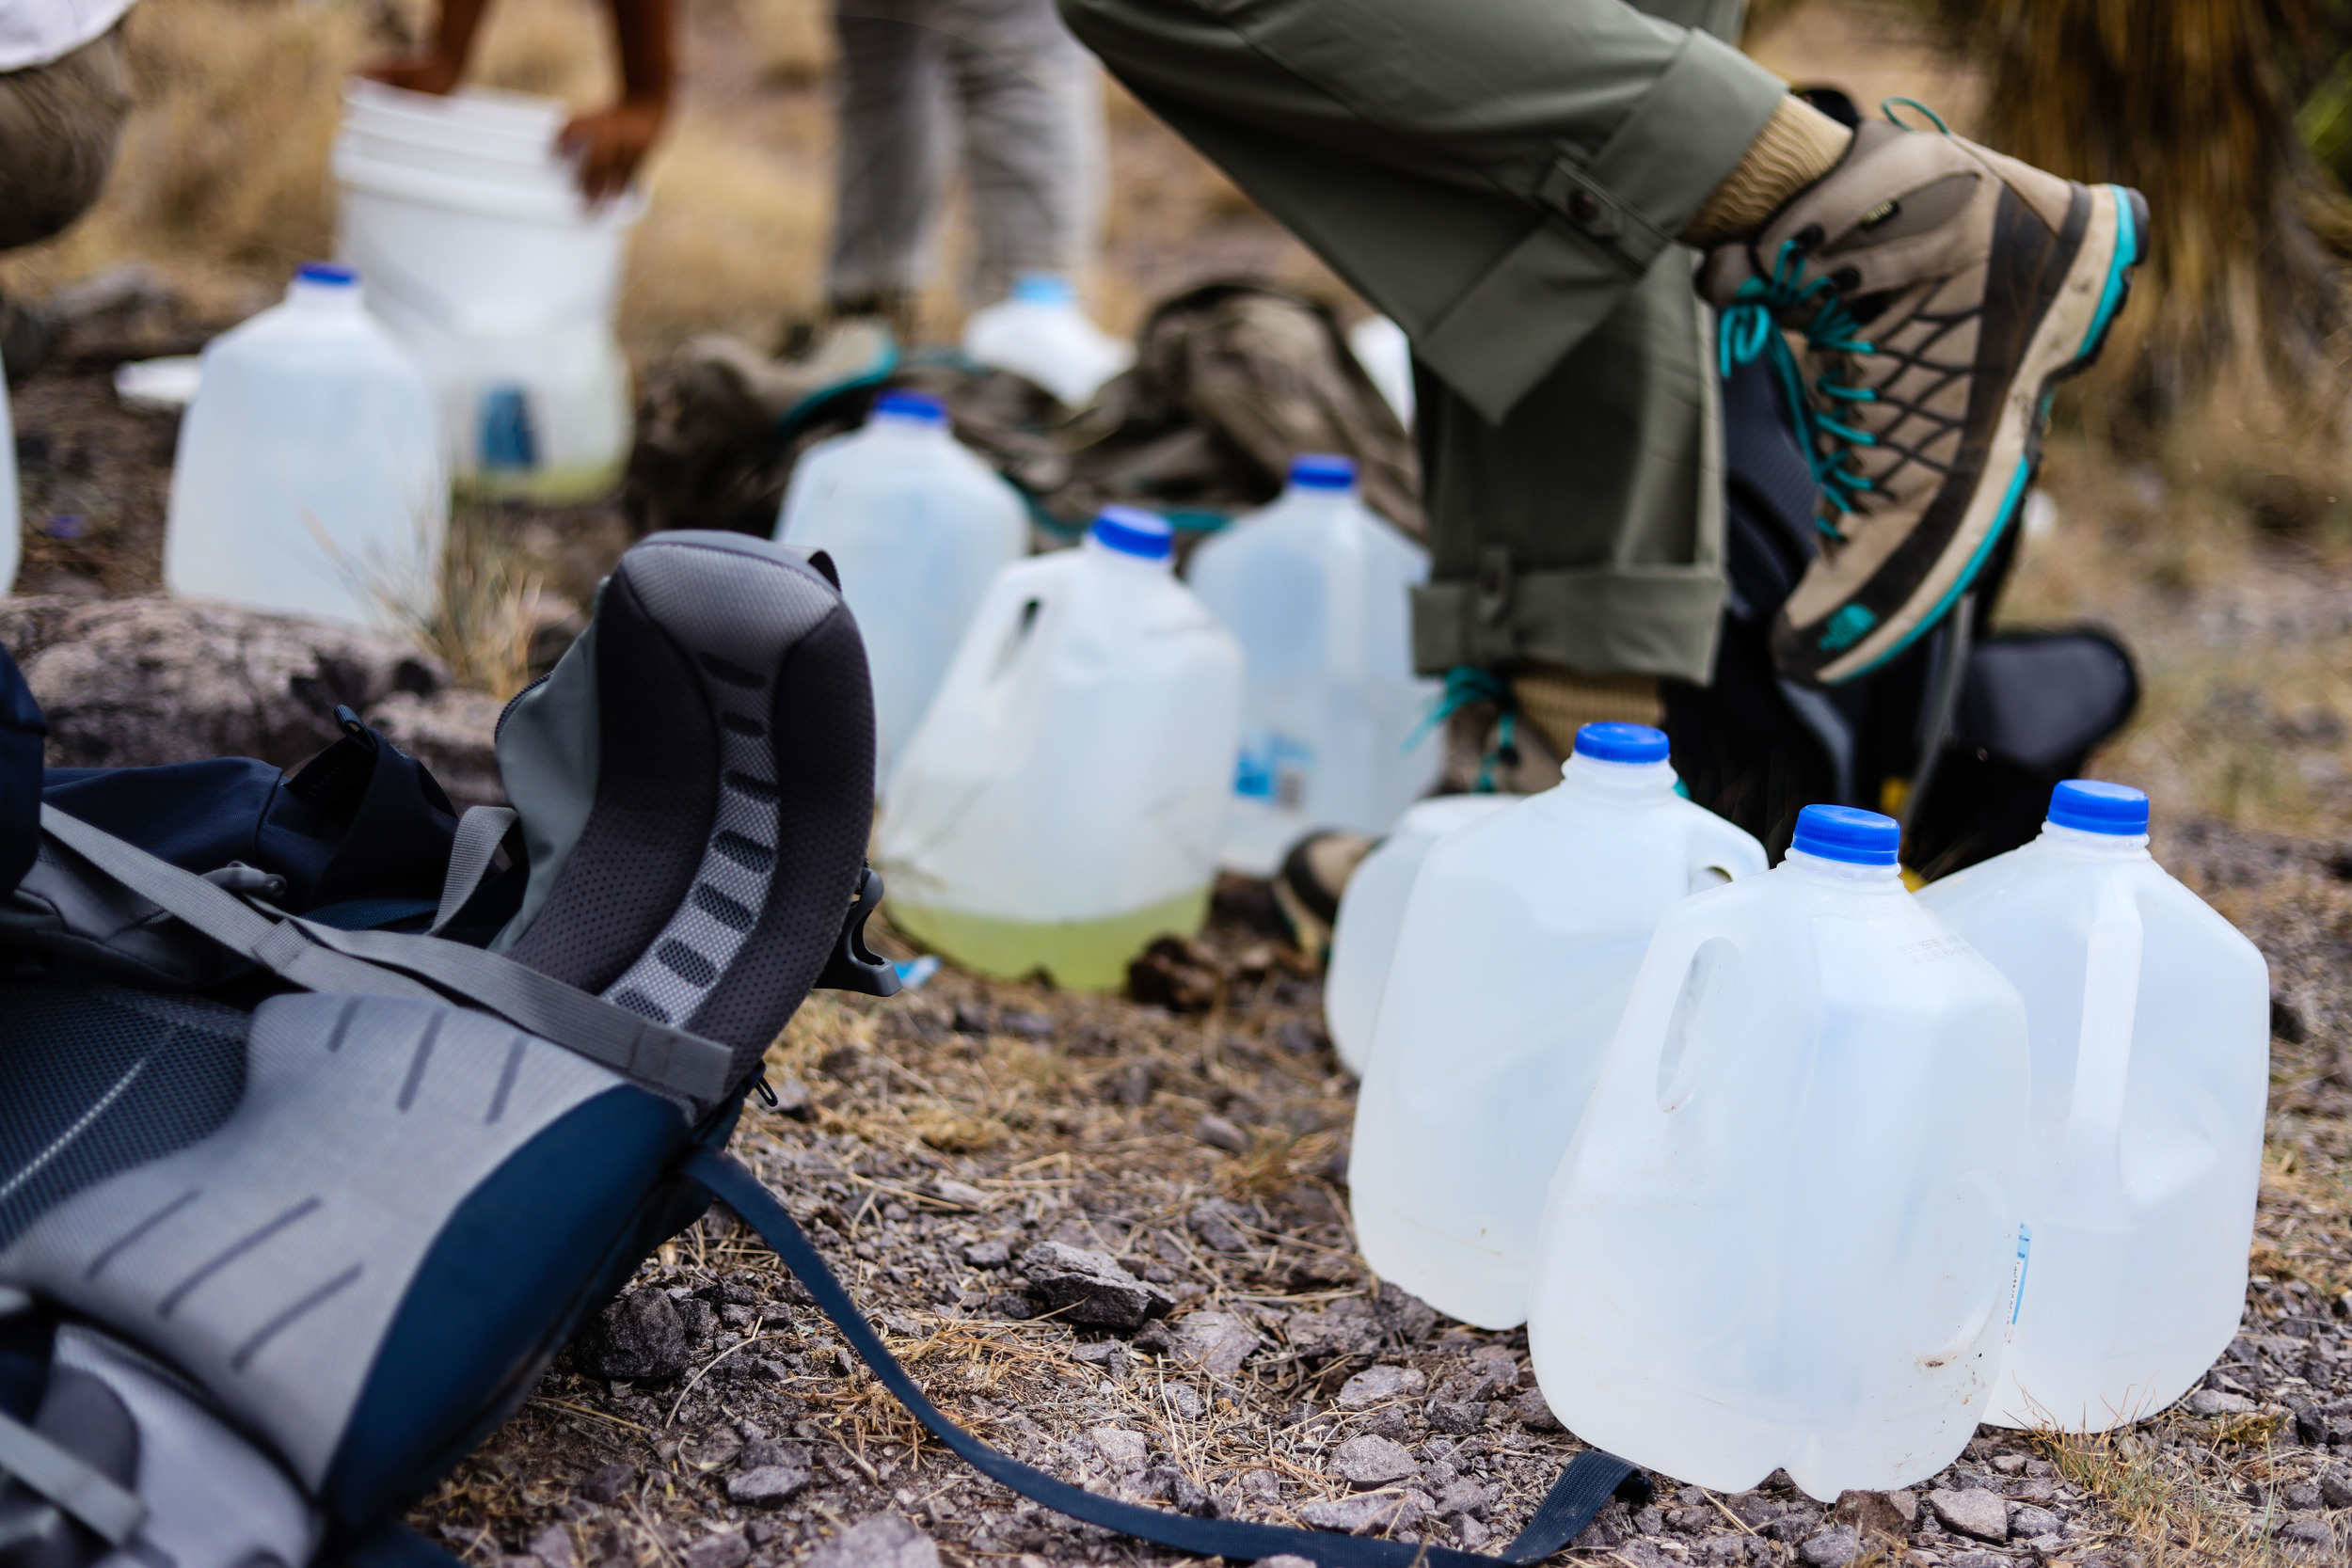 Water canisters are counted, and the empty ones are collected for reuse or disposal.